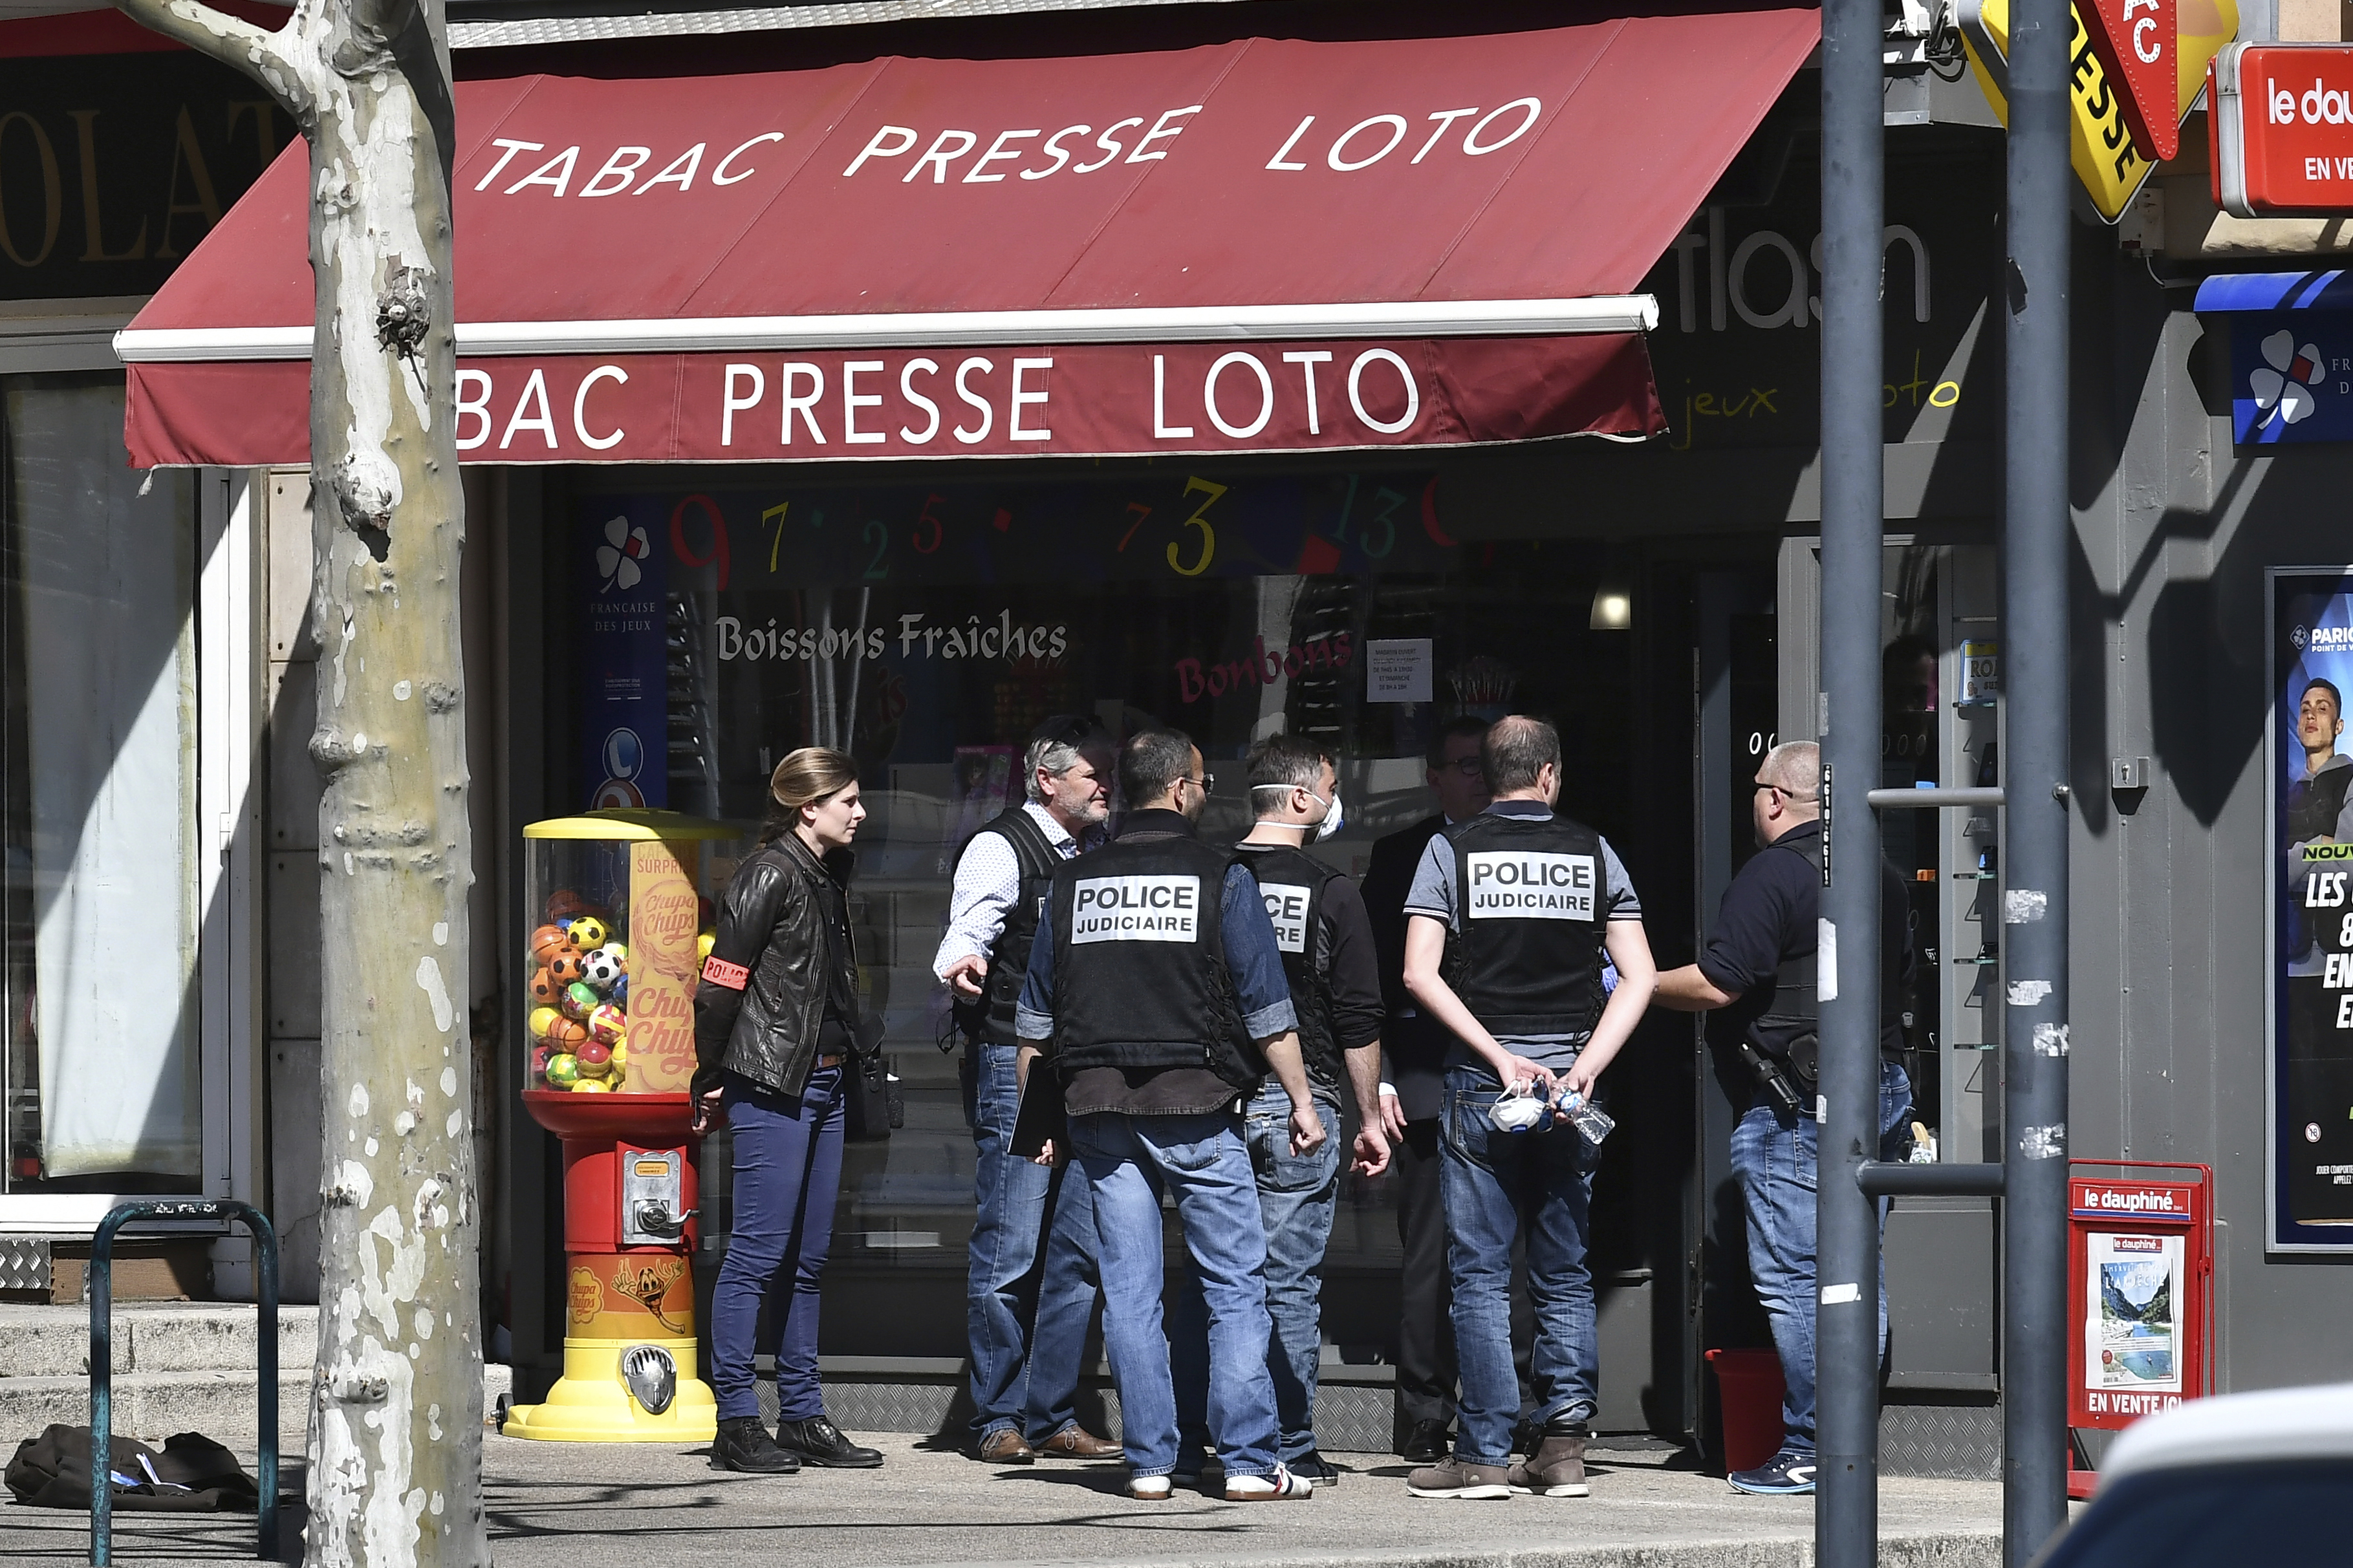 Knife-Wielding Man in Southern France Kills 2 in Attack on Passersby